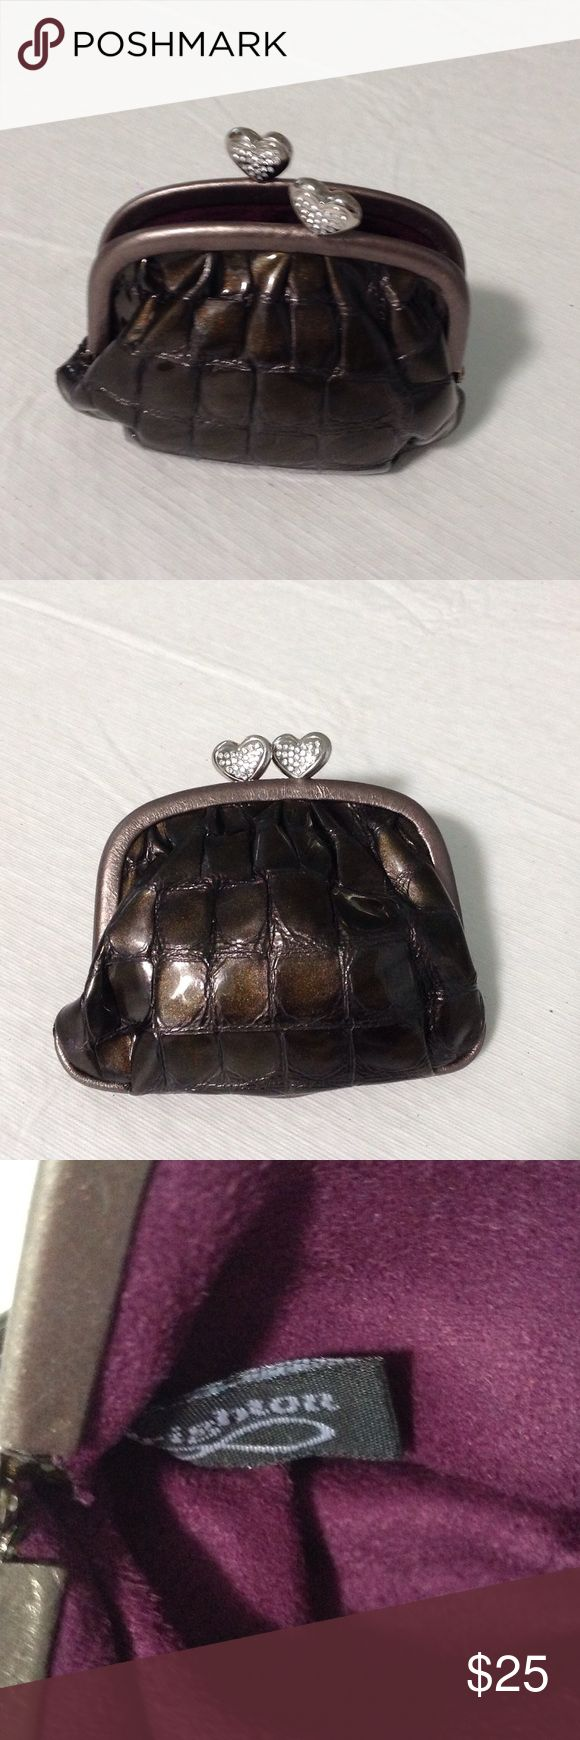 Accessories - change purse. Stunning, AUTHENTIC Brighton change purse. Two beautiful side by side closure Crystal hearts.  Slightly used.  EXCELLENT Condition! Brighton Accessories